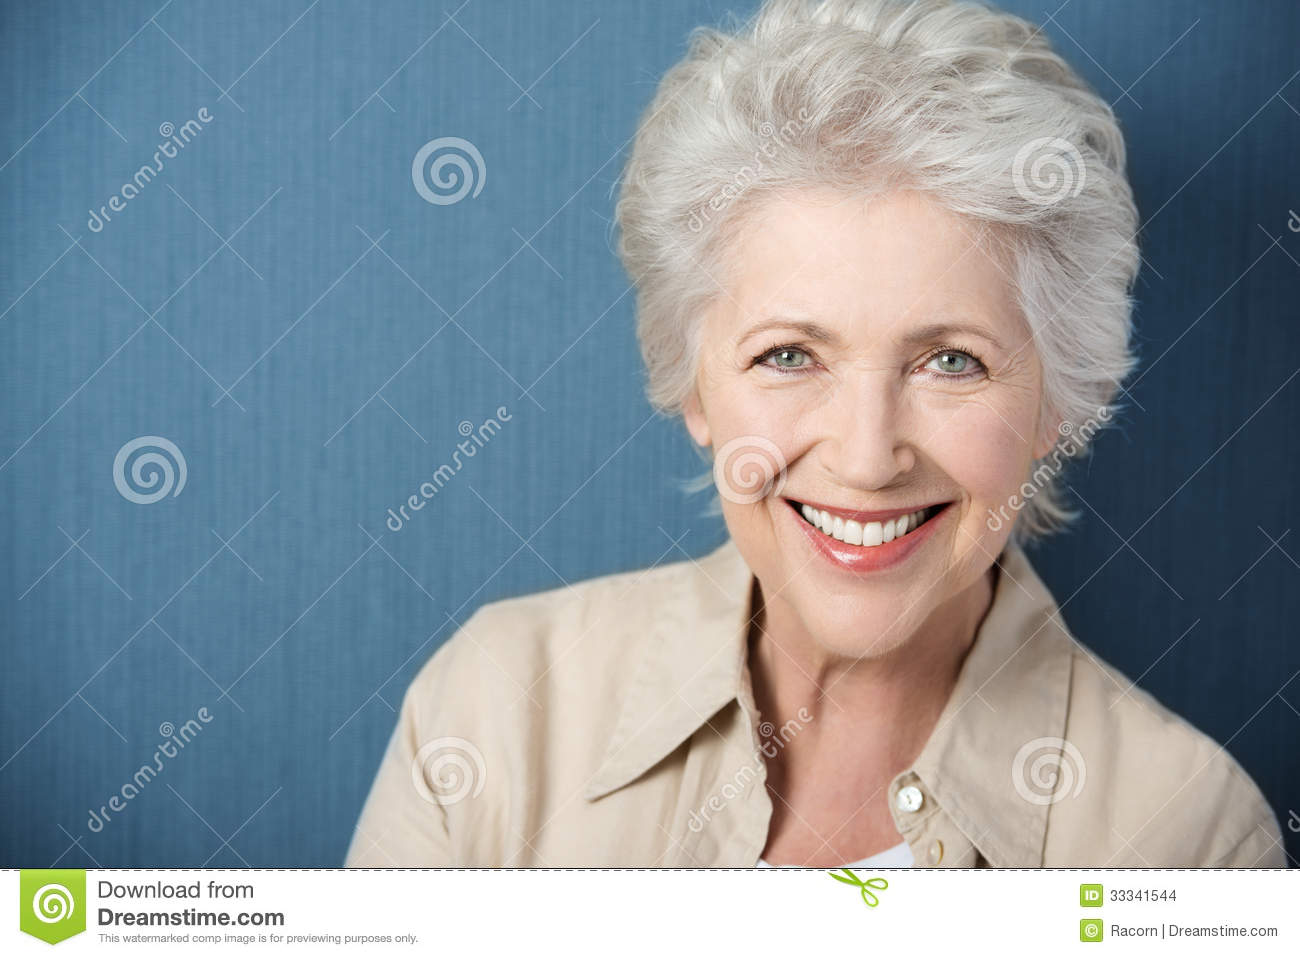 Beautiful elderly lady with a lively smile